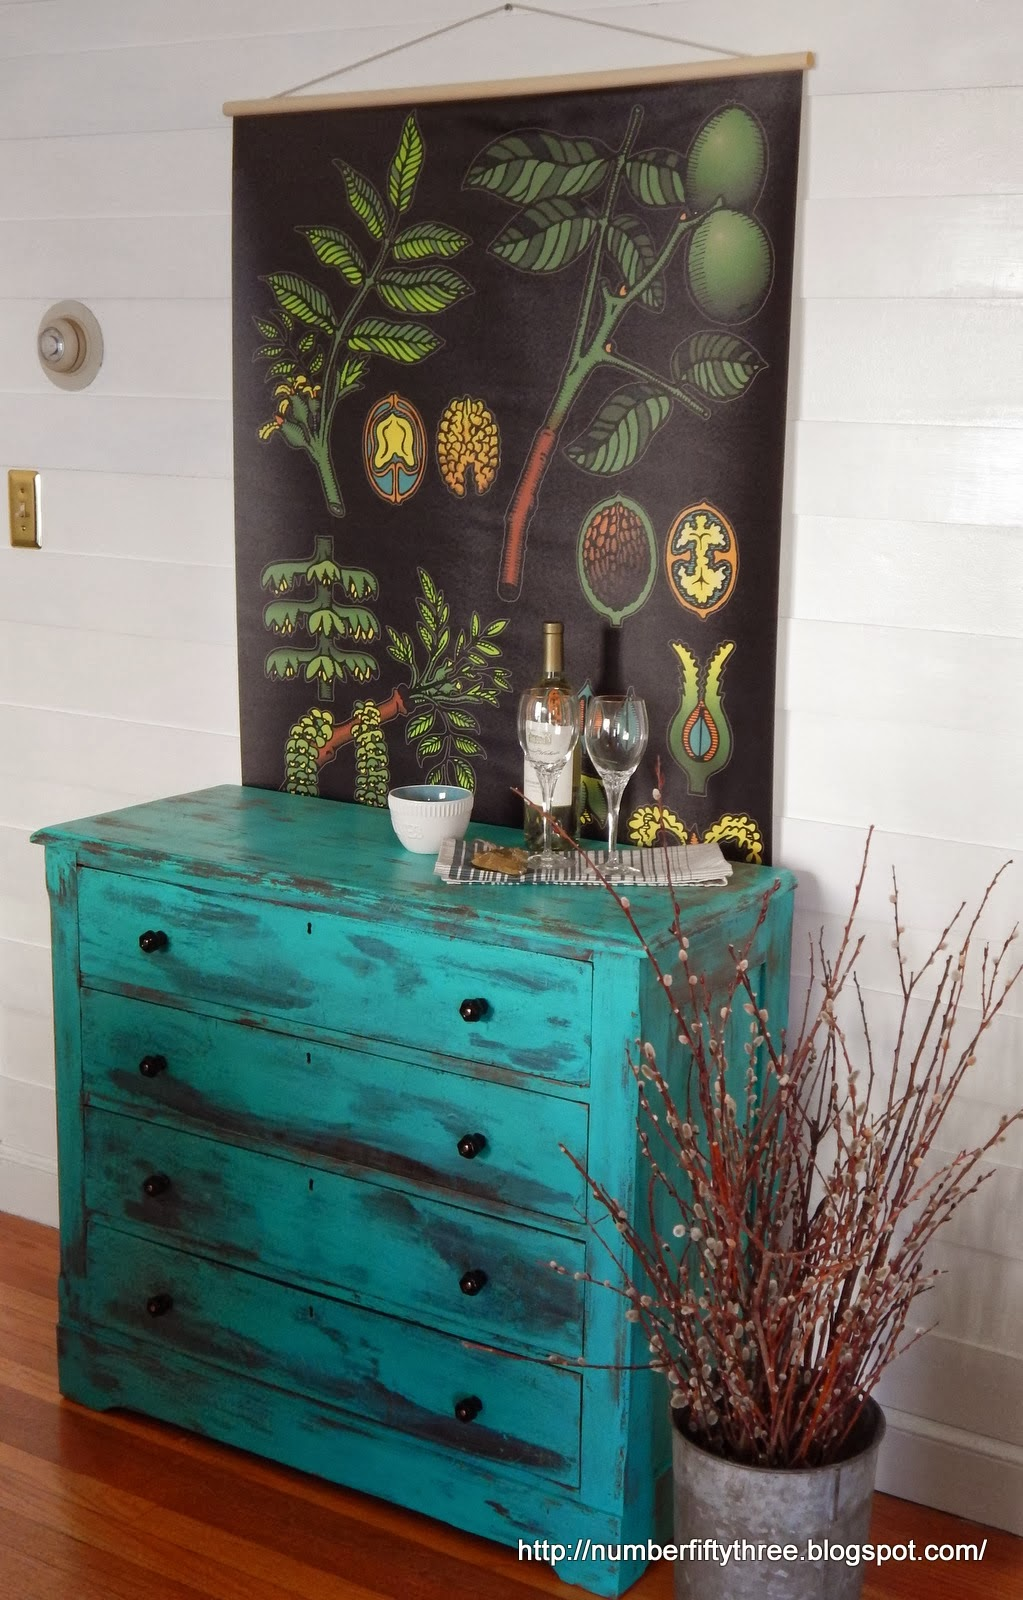 http://numberfiftythree.blogspot.com/2014/01/patina-green-antique-dresser.html#more